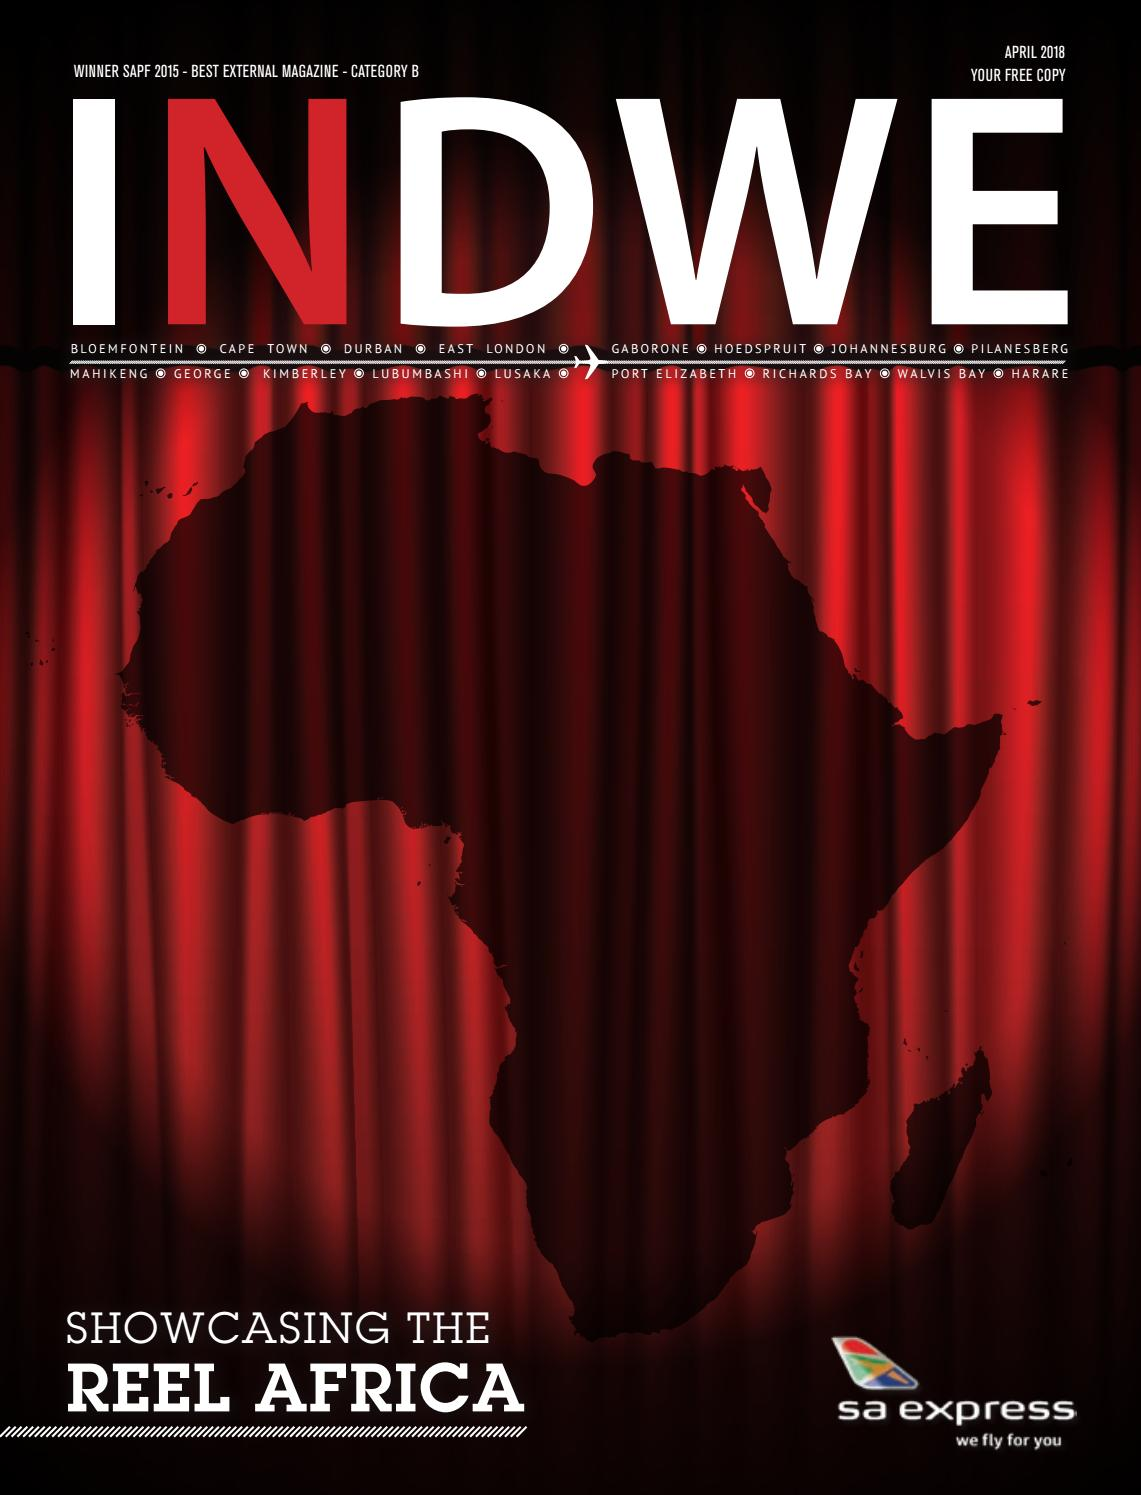 Indwe april 2018 by TJT Media Online - issuu